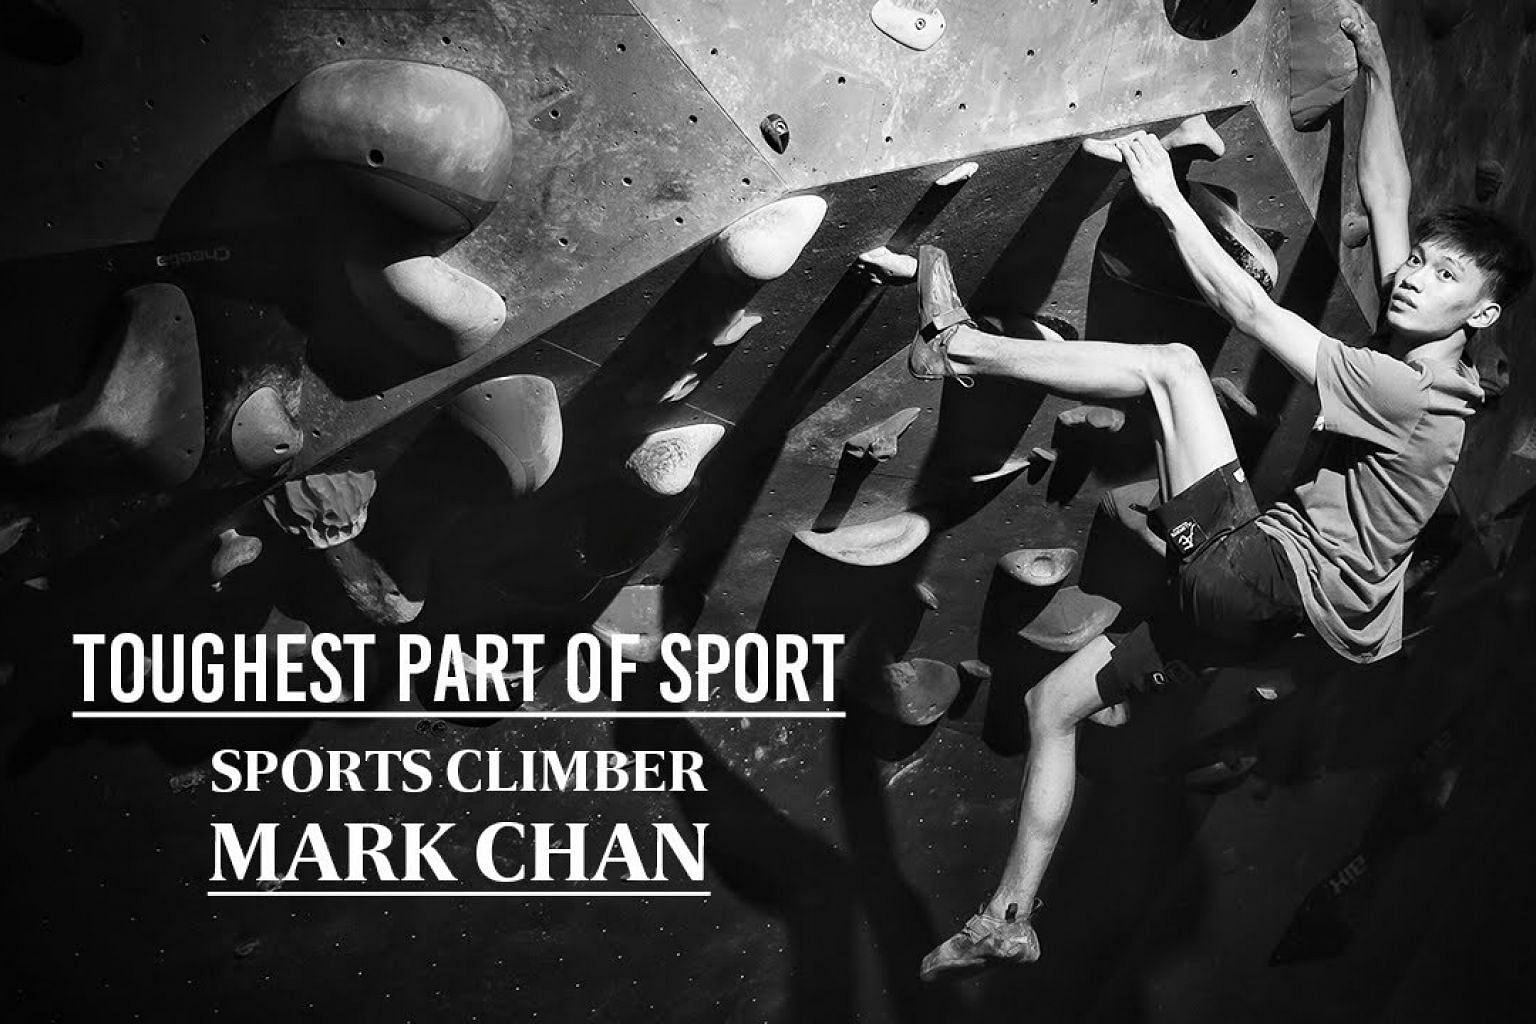 Hard route to knowledge | Sports climber Mark Chan | Toughest Part of Sport